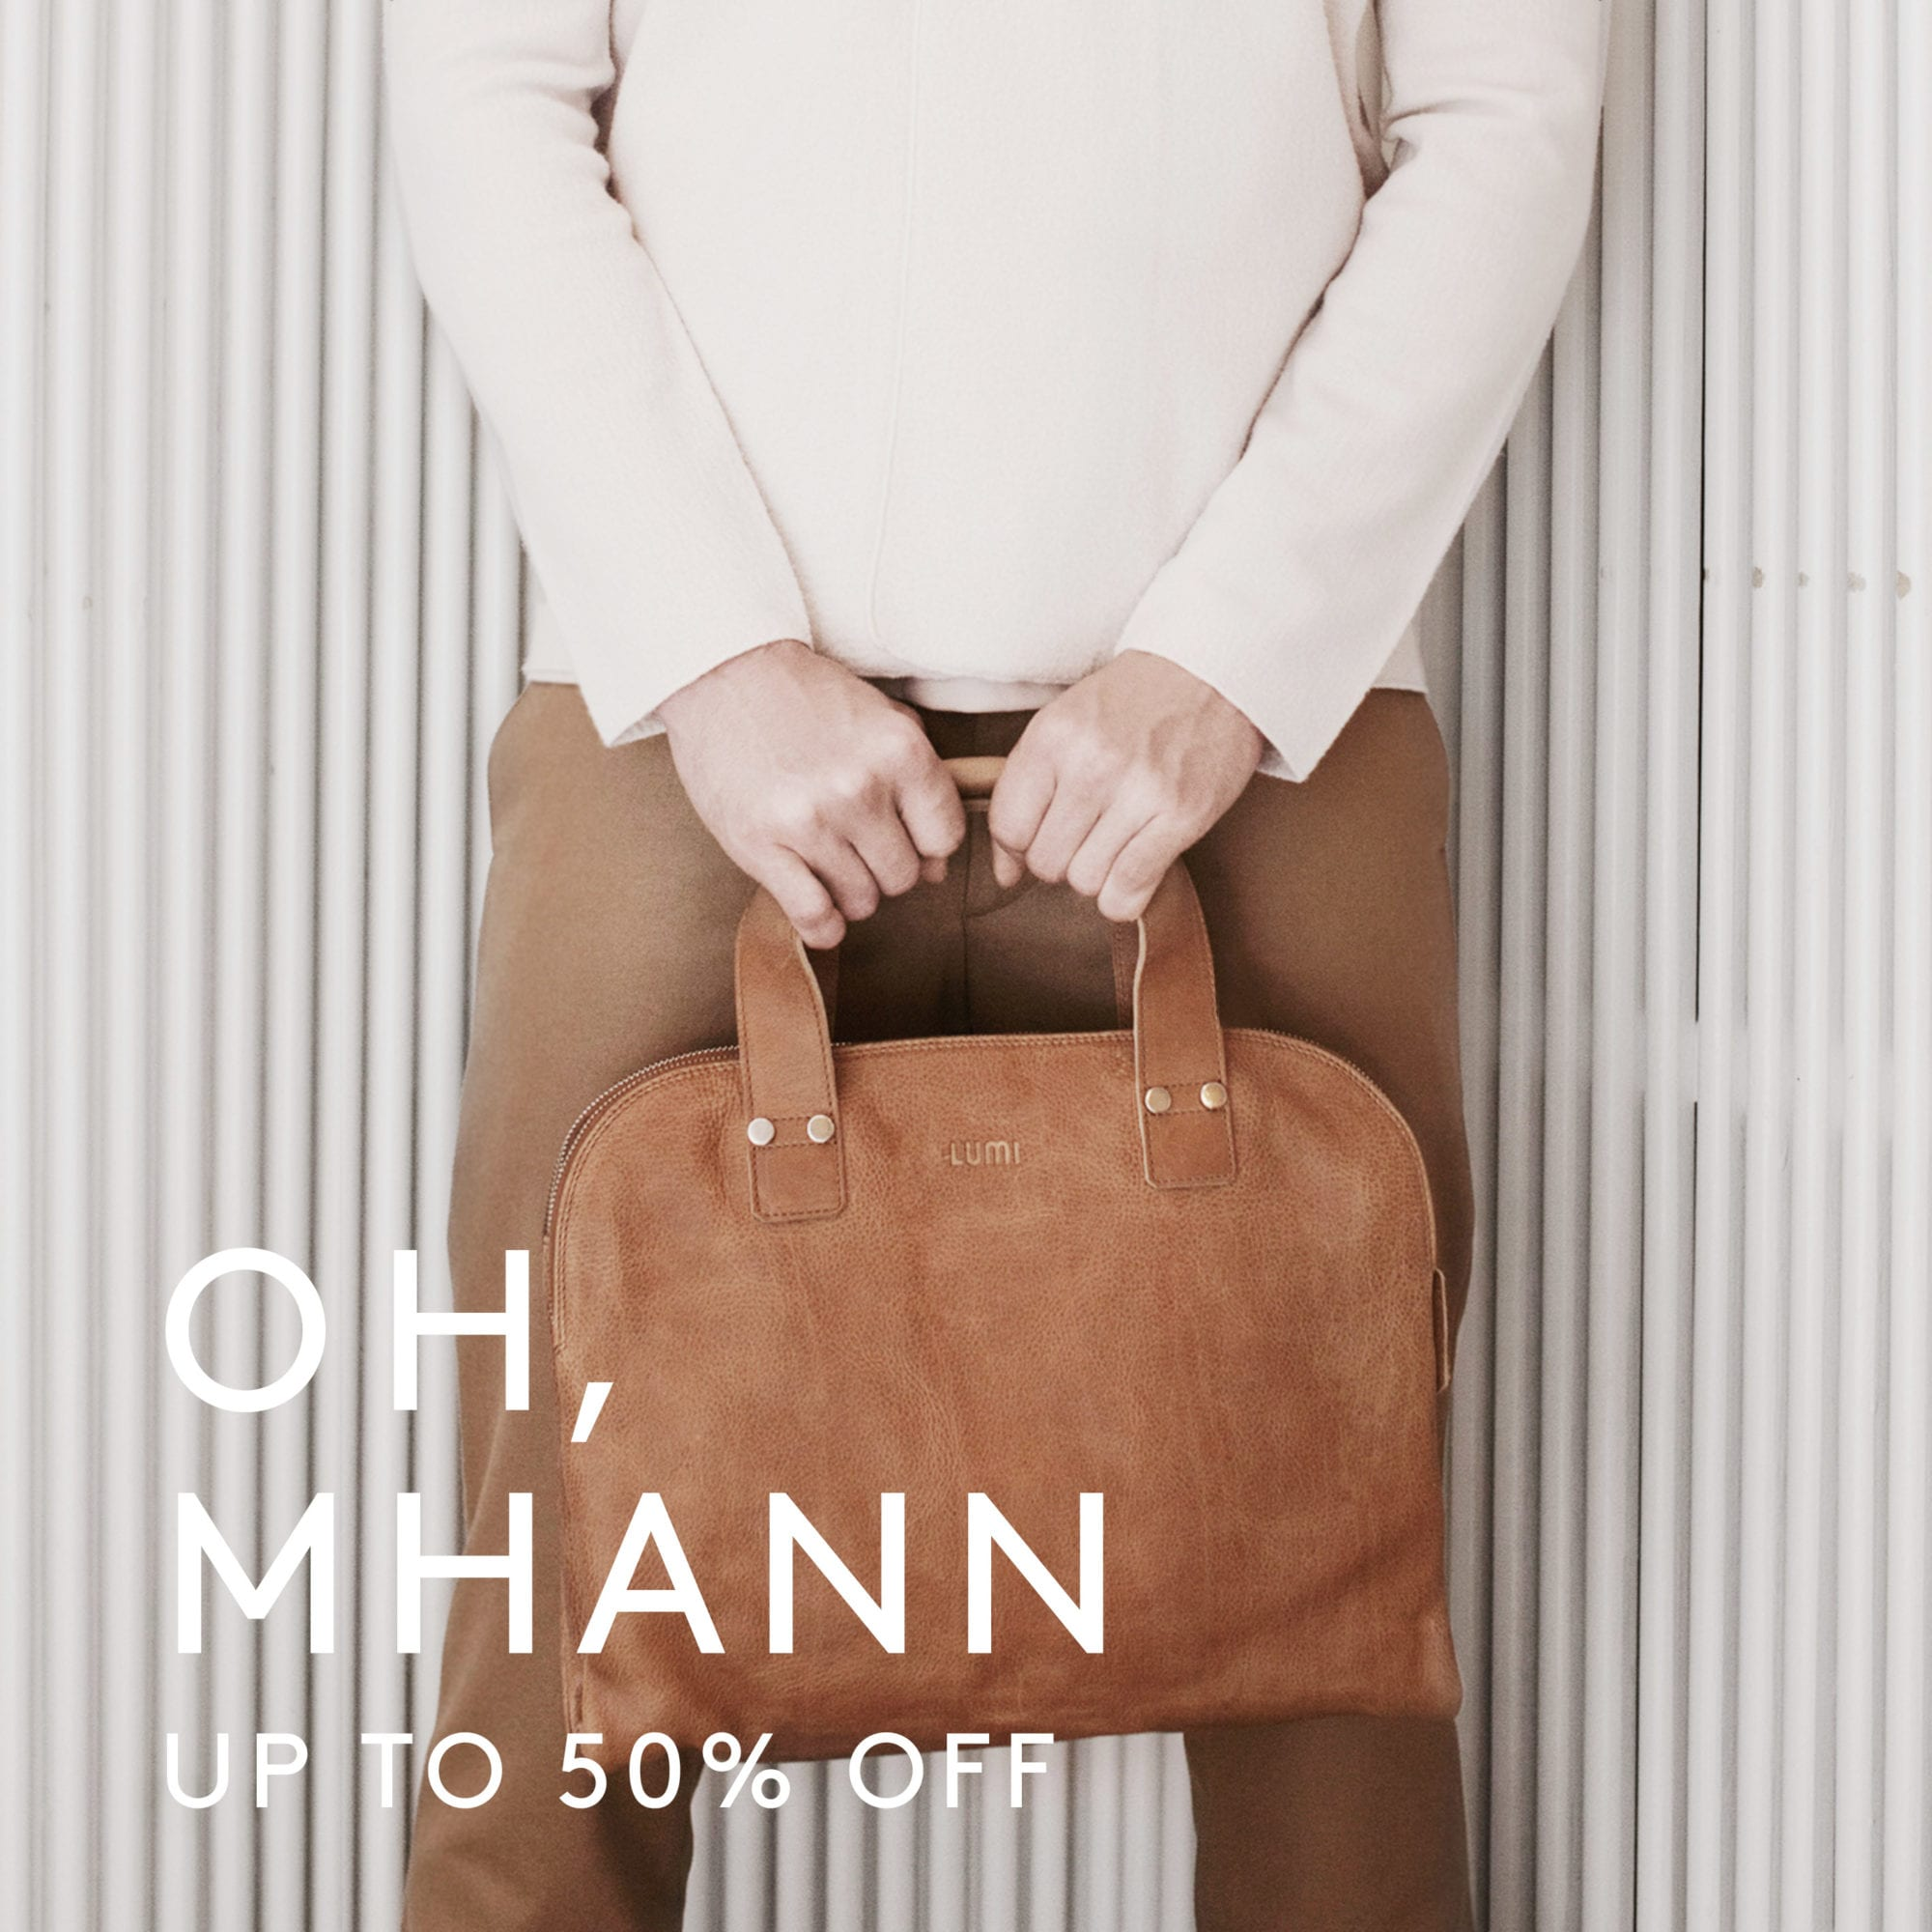 Final reductions on selected LUMI Mhann Line items with up to 50% off.